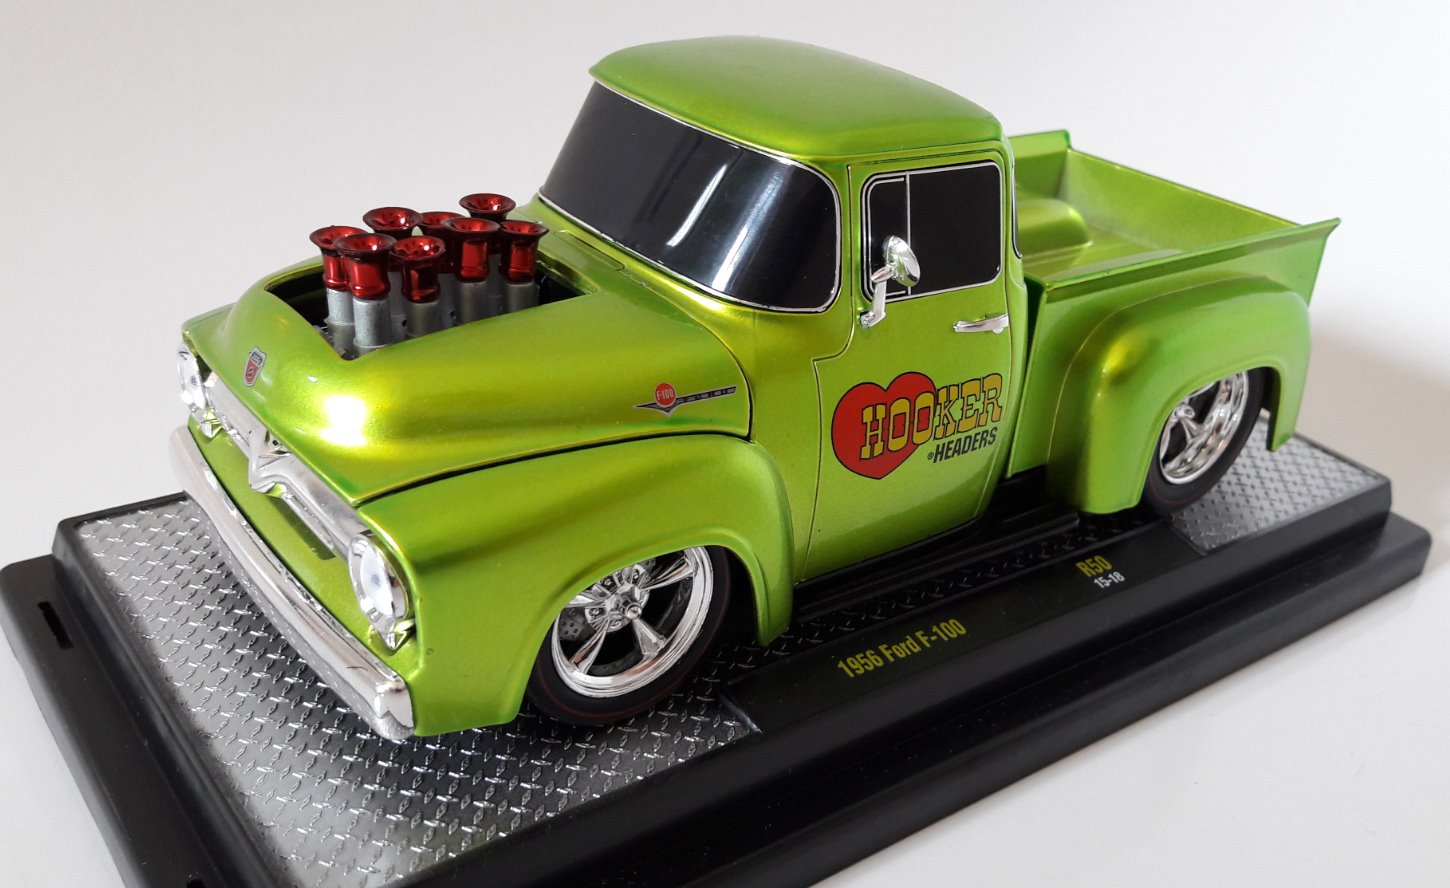 Ford F-100 Hooker Headers Toy Car, Die Cast, And Hot Wheels (1956) front image (front cover)